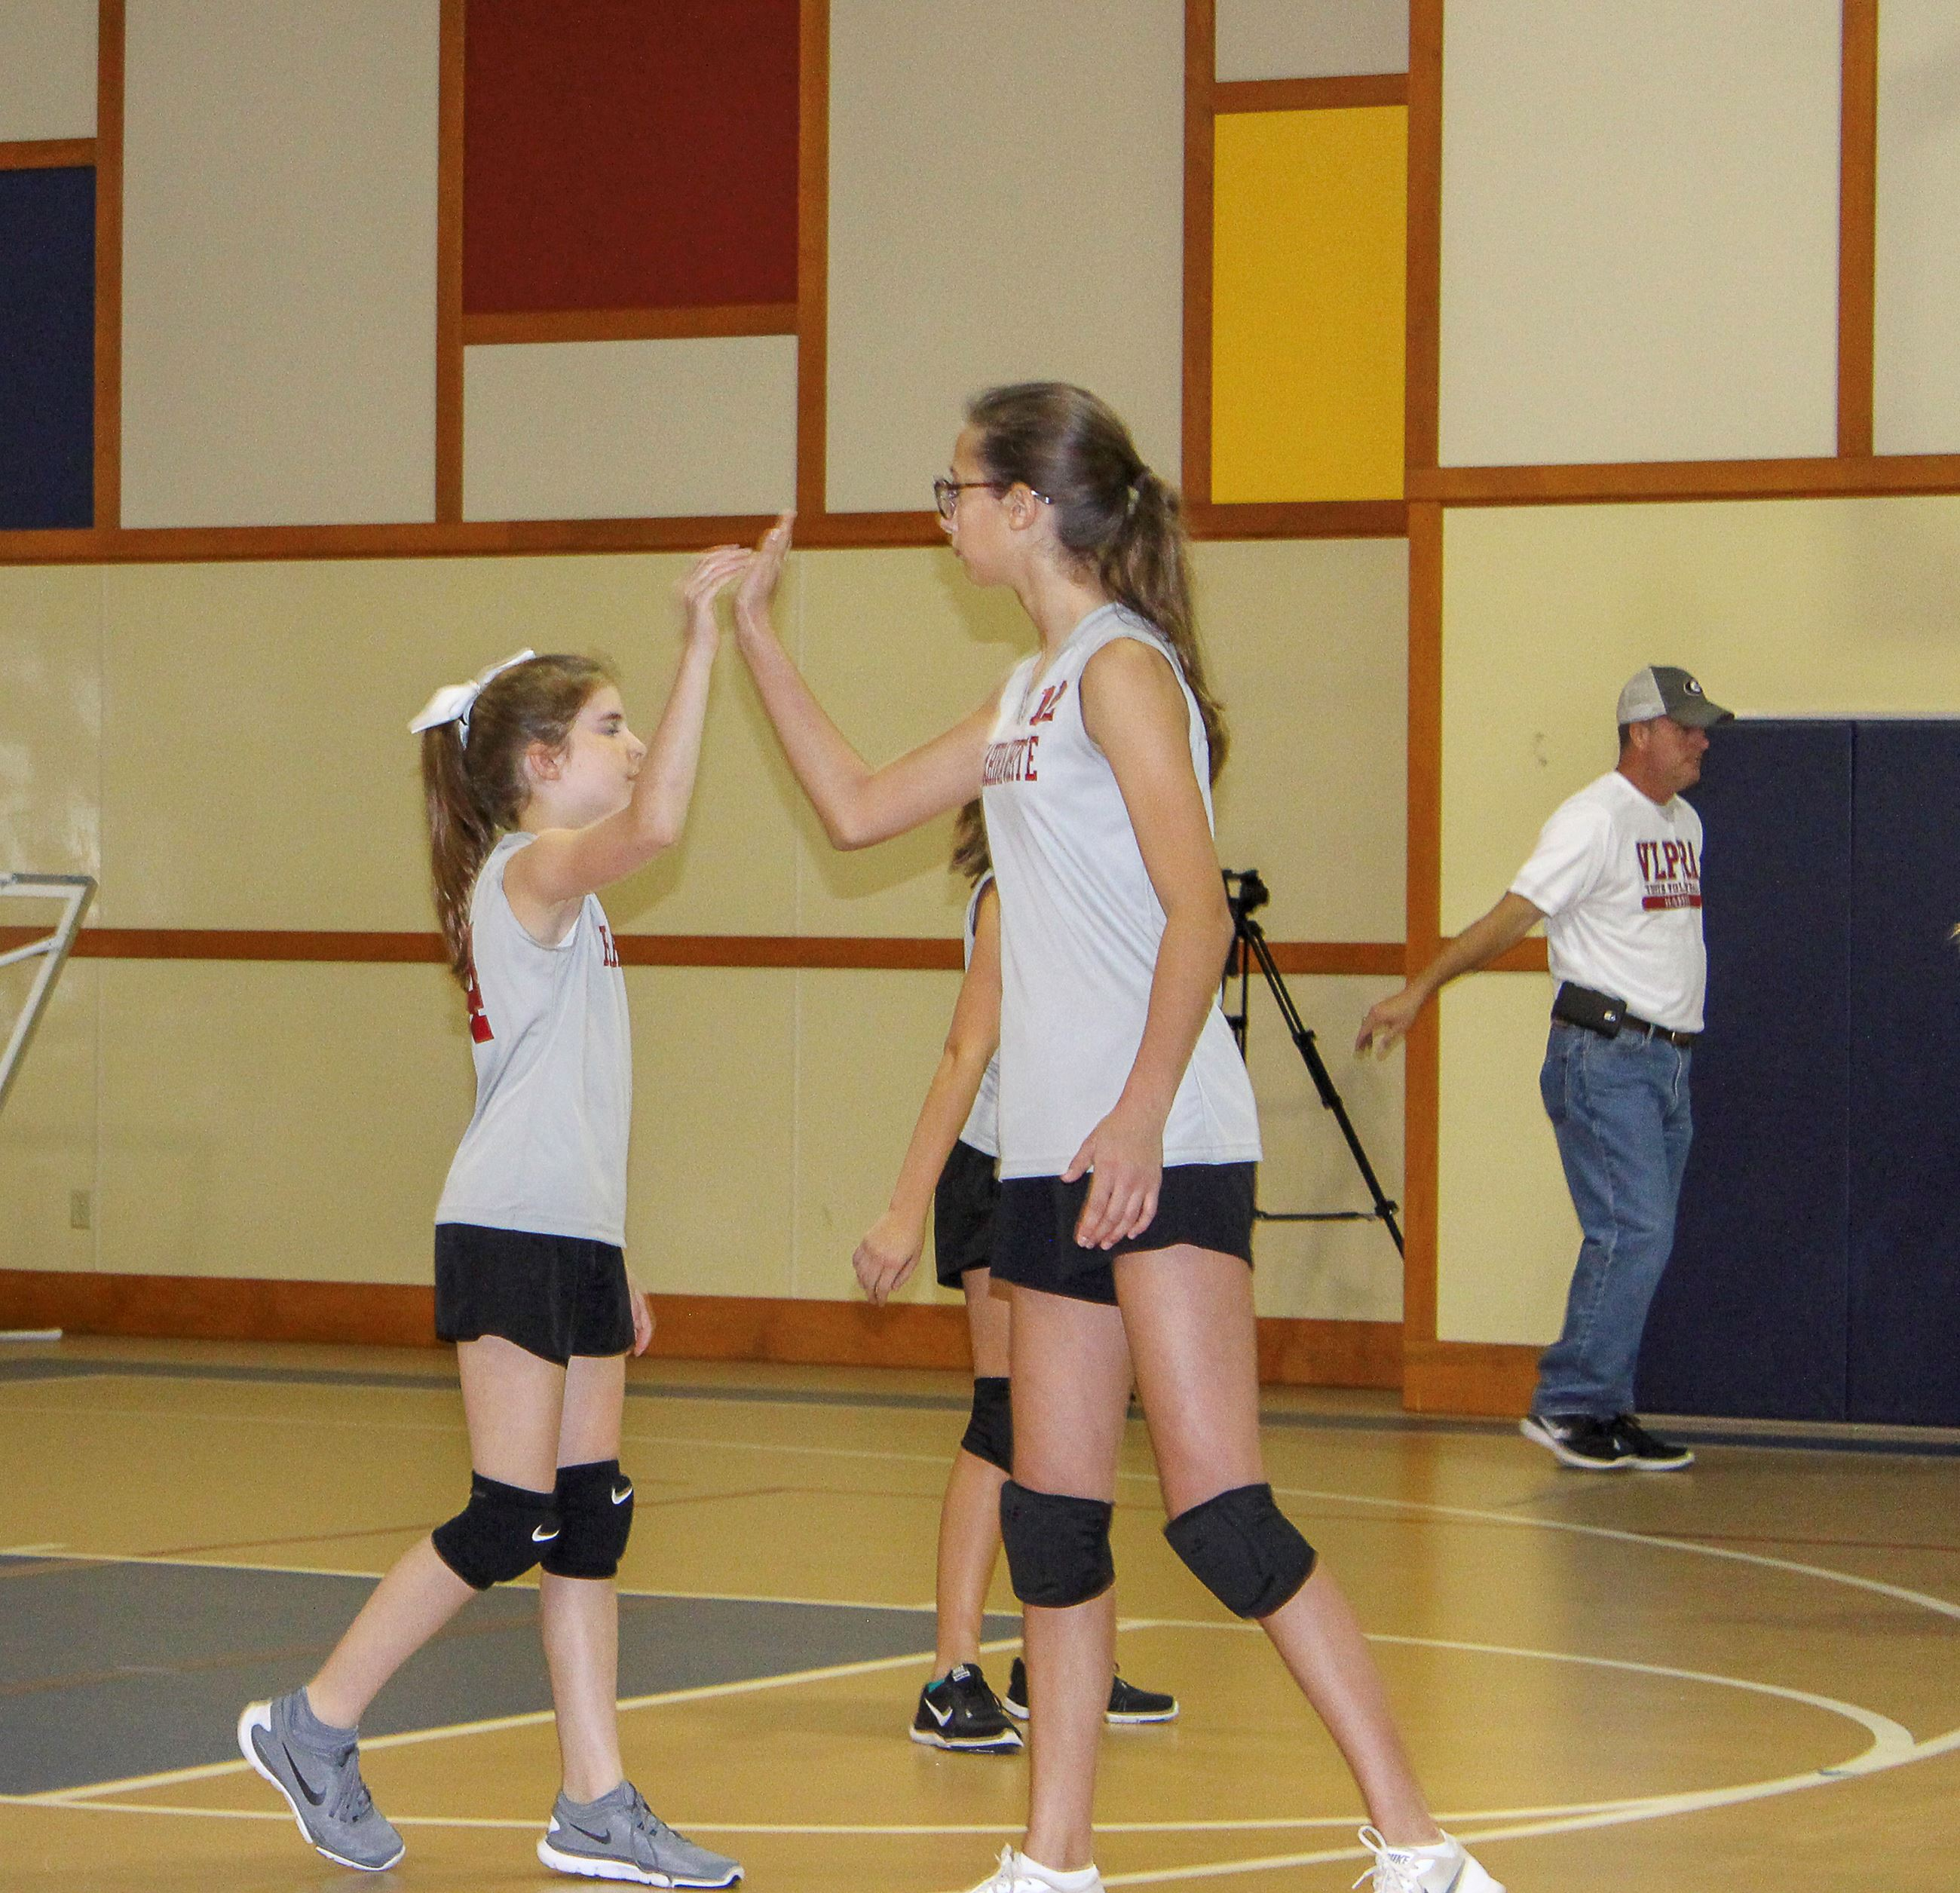 Image of girls playing volleyball.